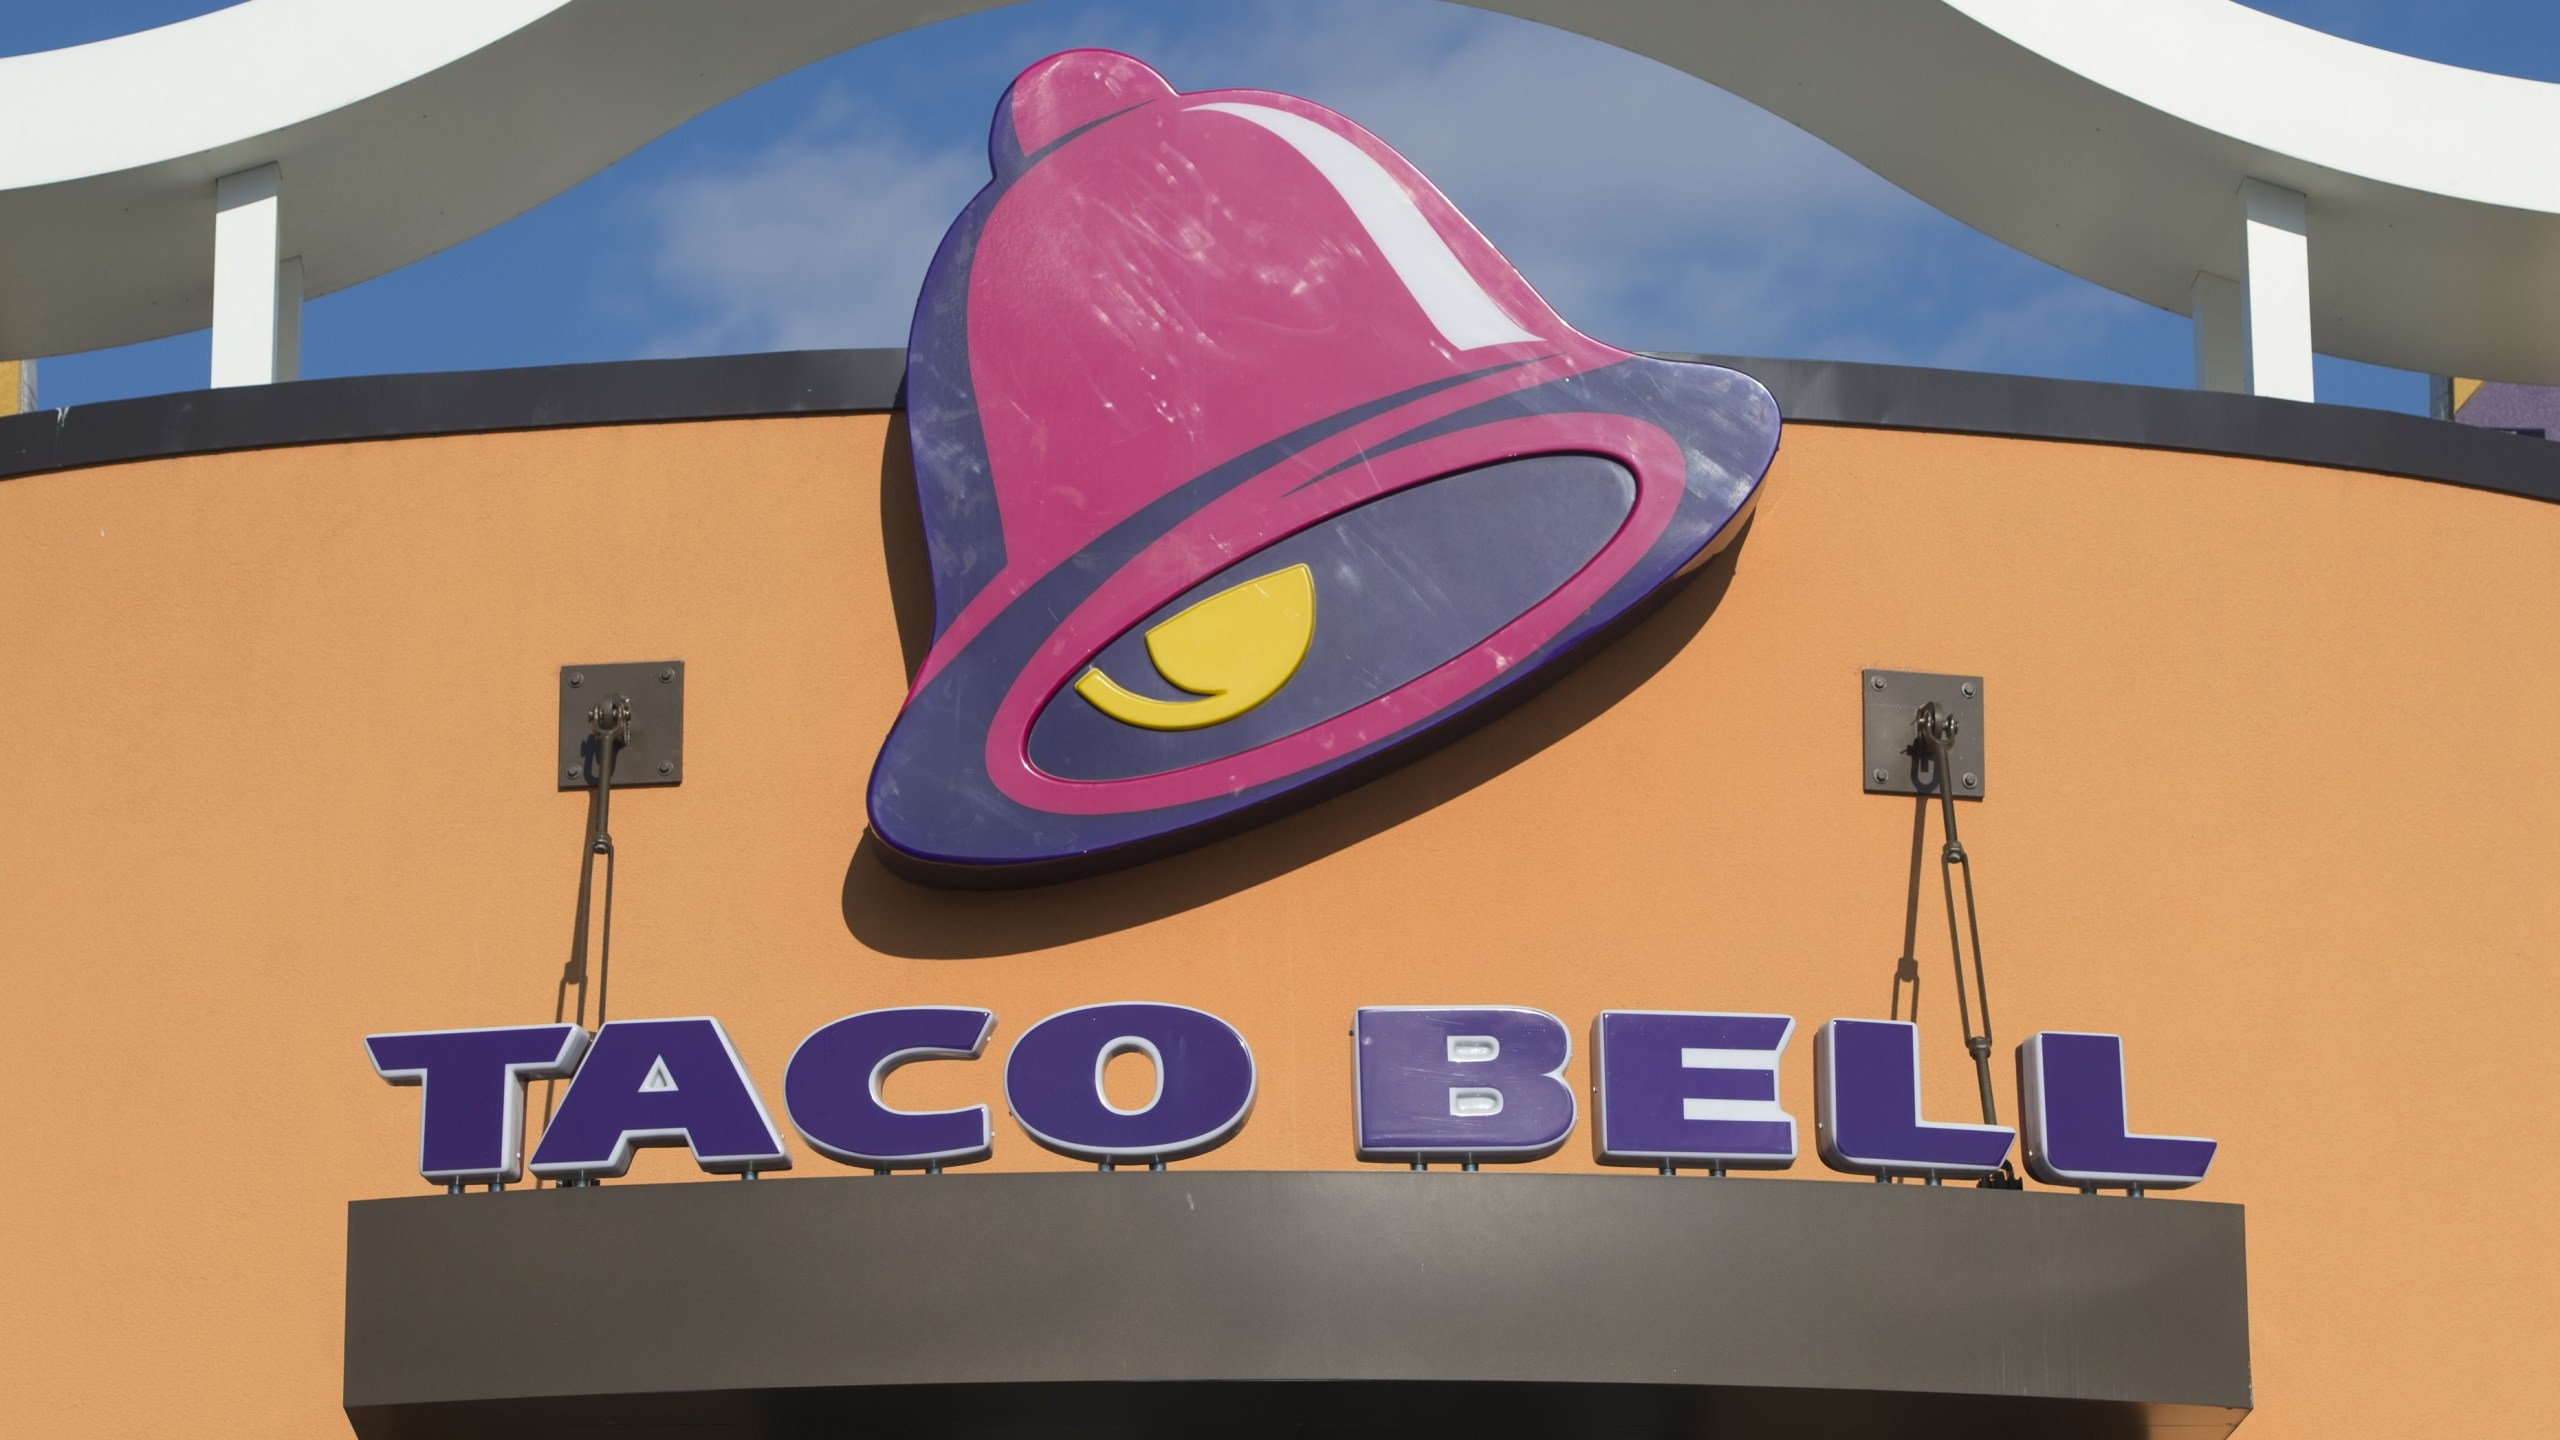 A Taco Bell fast food restaurant is seen in New Carrollton, Maryland, December 31, 2014. (SAUL LOEB/AFP/Getty Images)